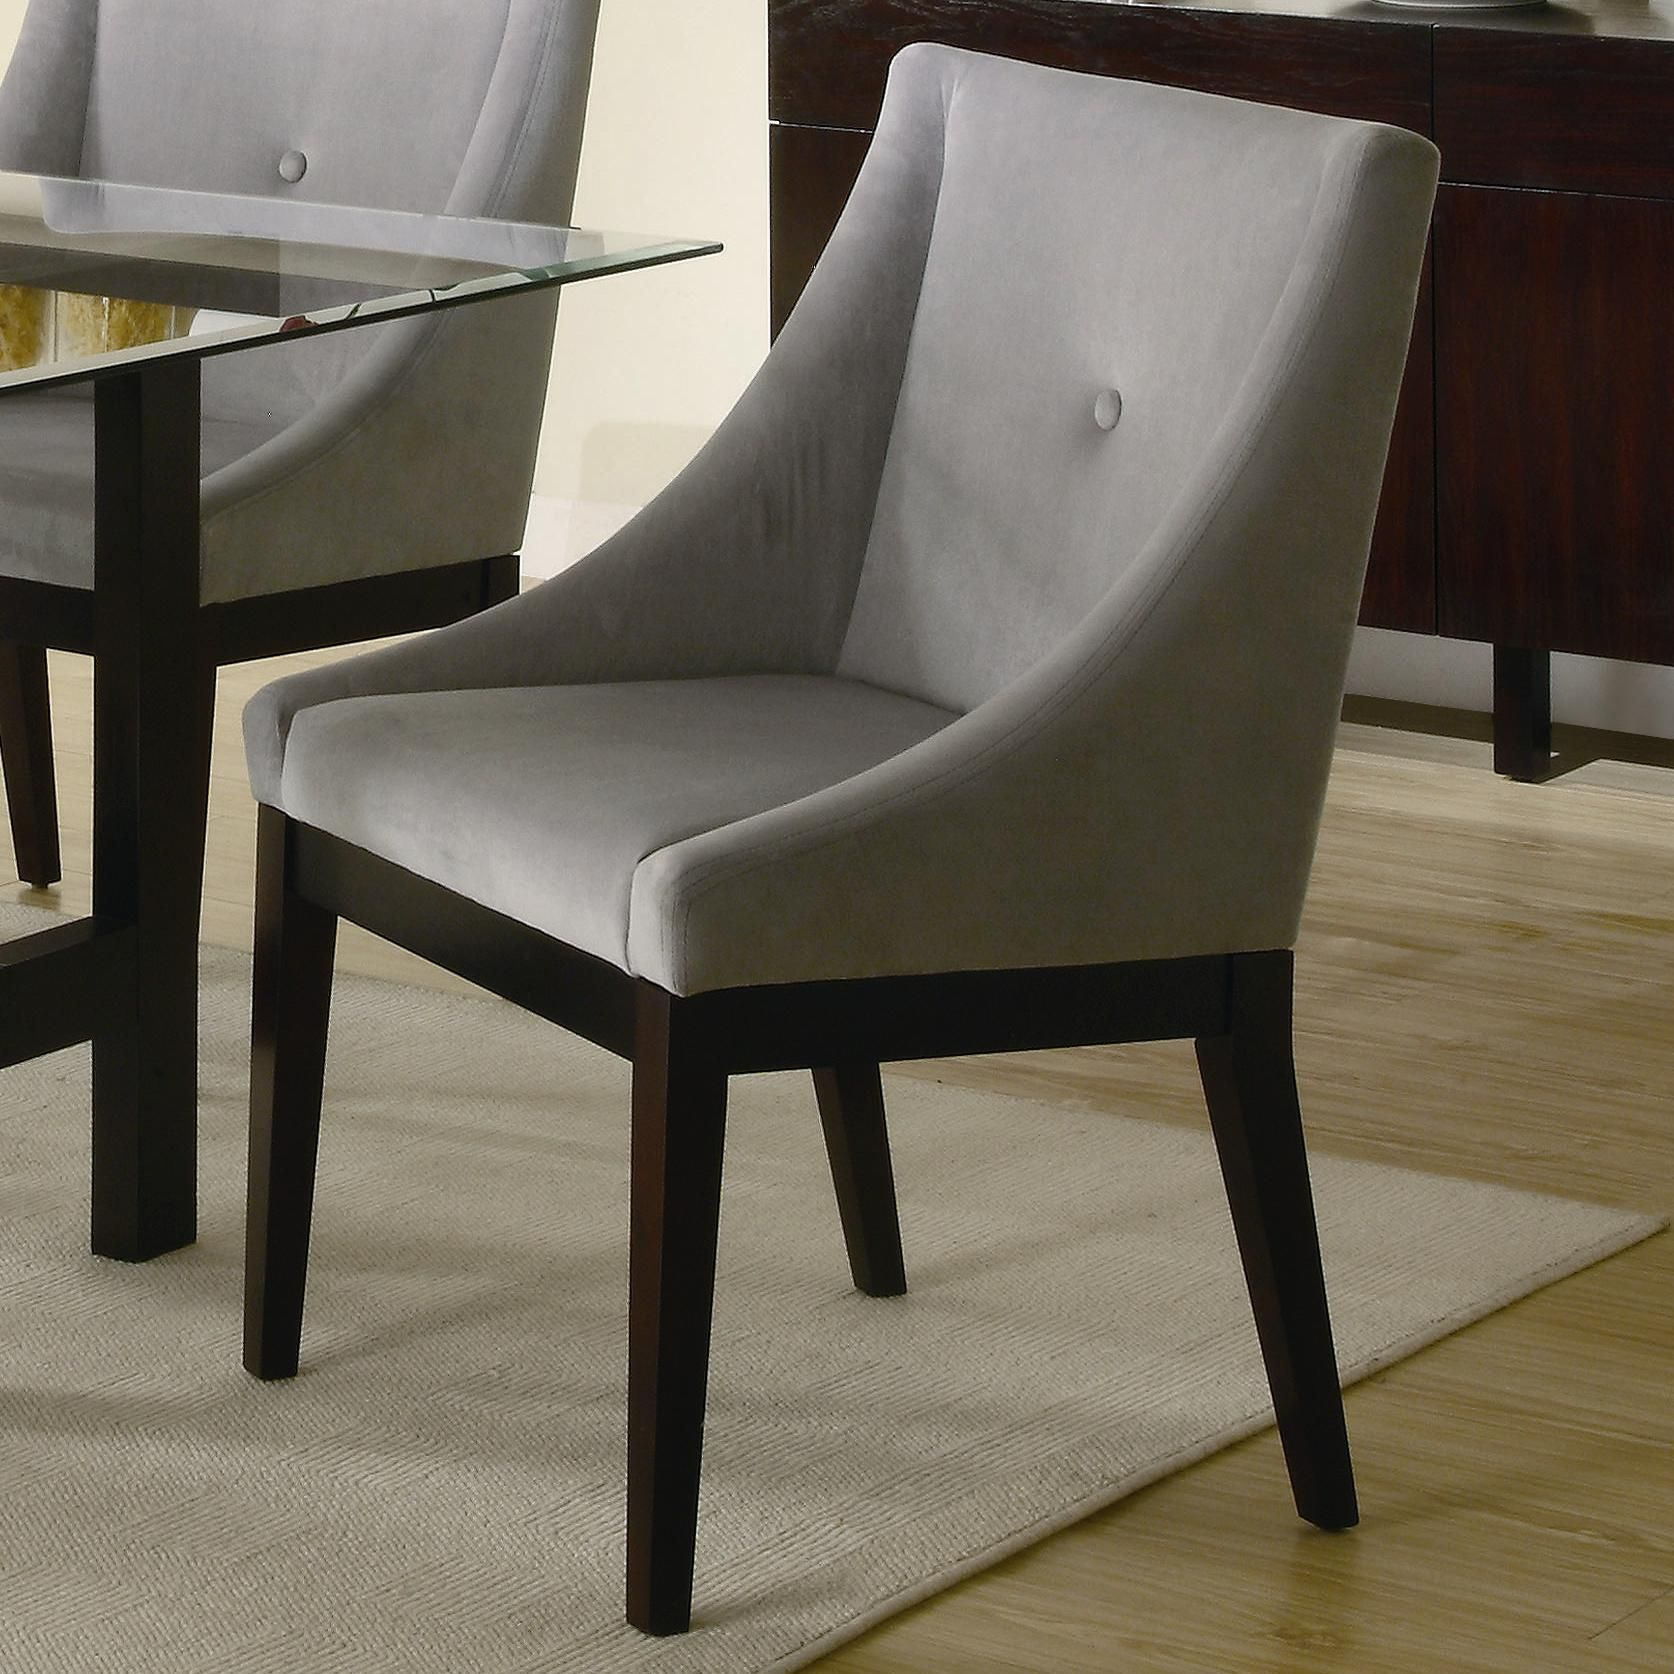 Contemporary Kitchen Chairs With Arms  Httpsodakaustica Cool Contemporary Kitchen Chairs Inspiration Design